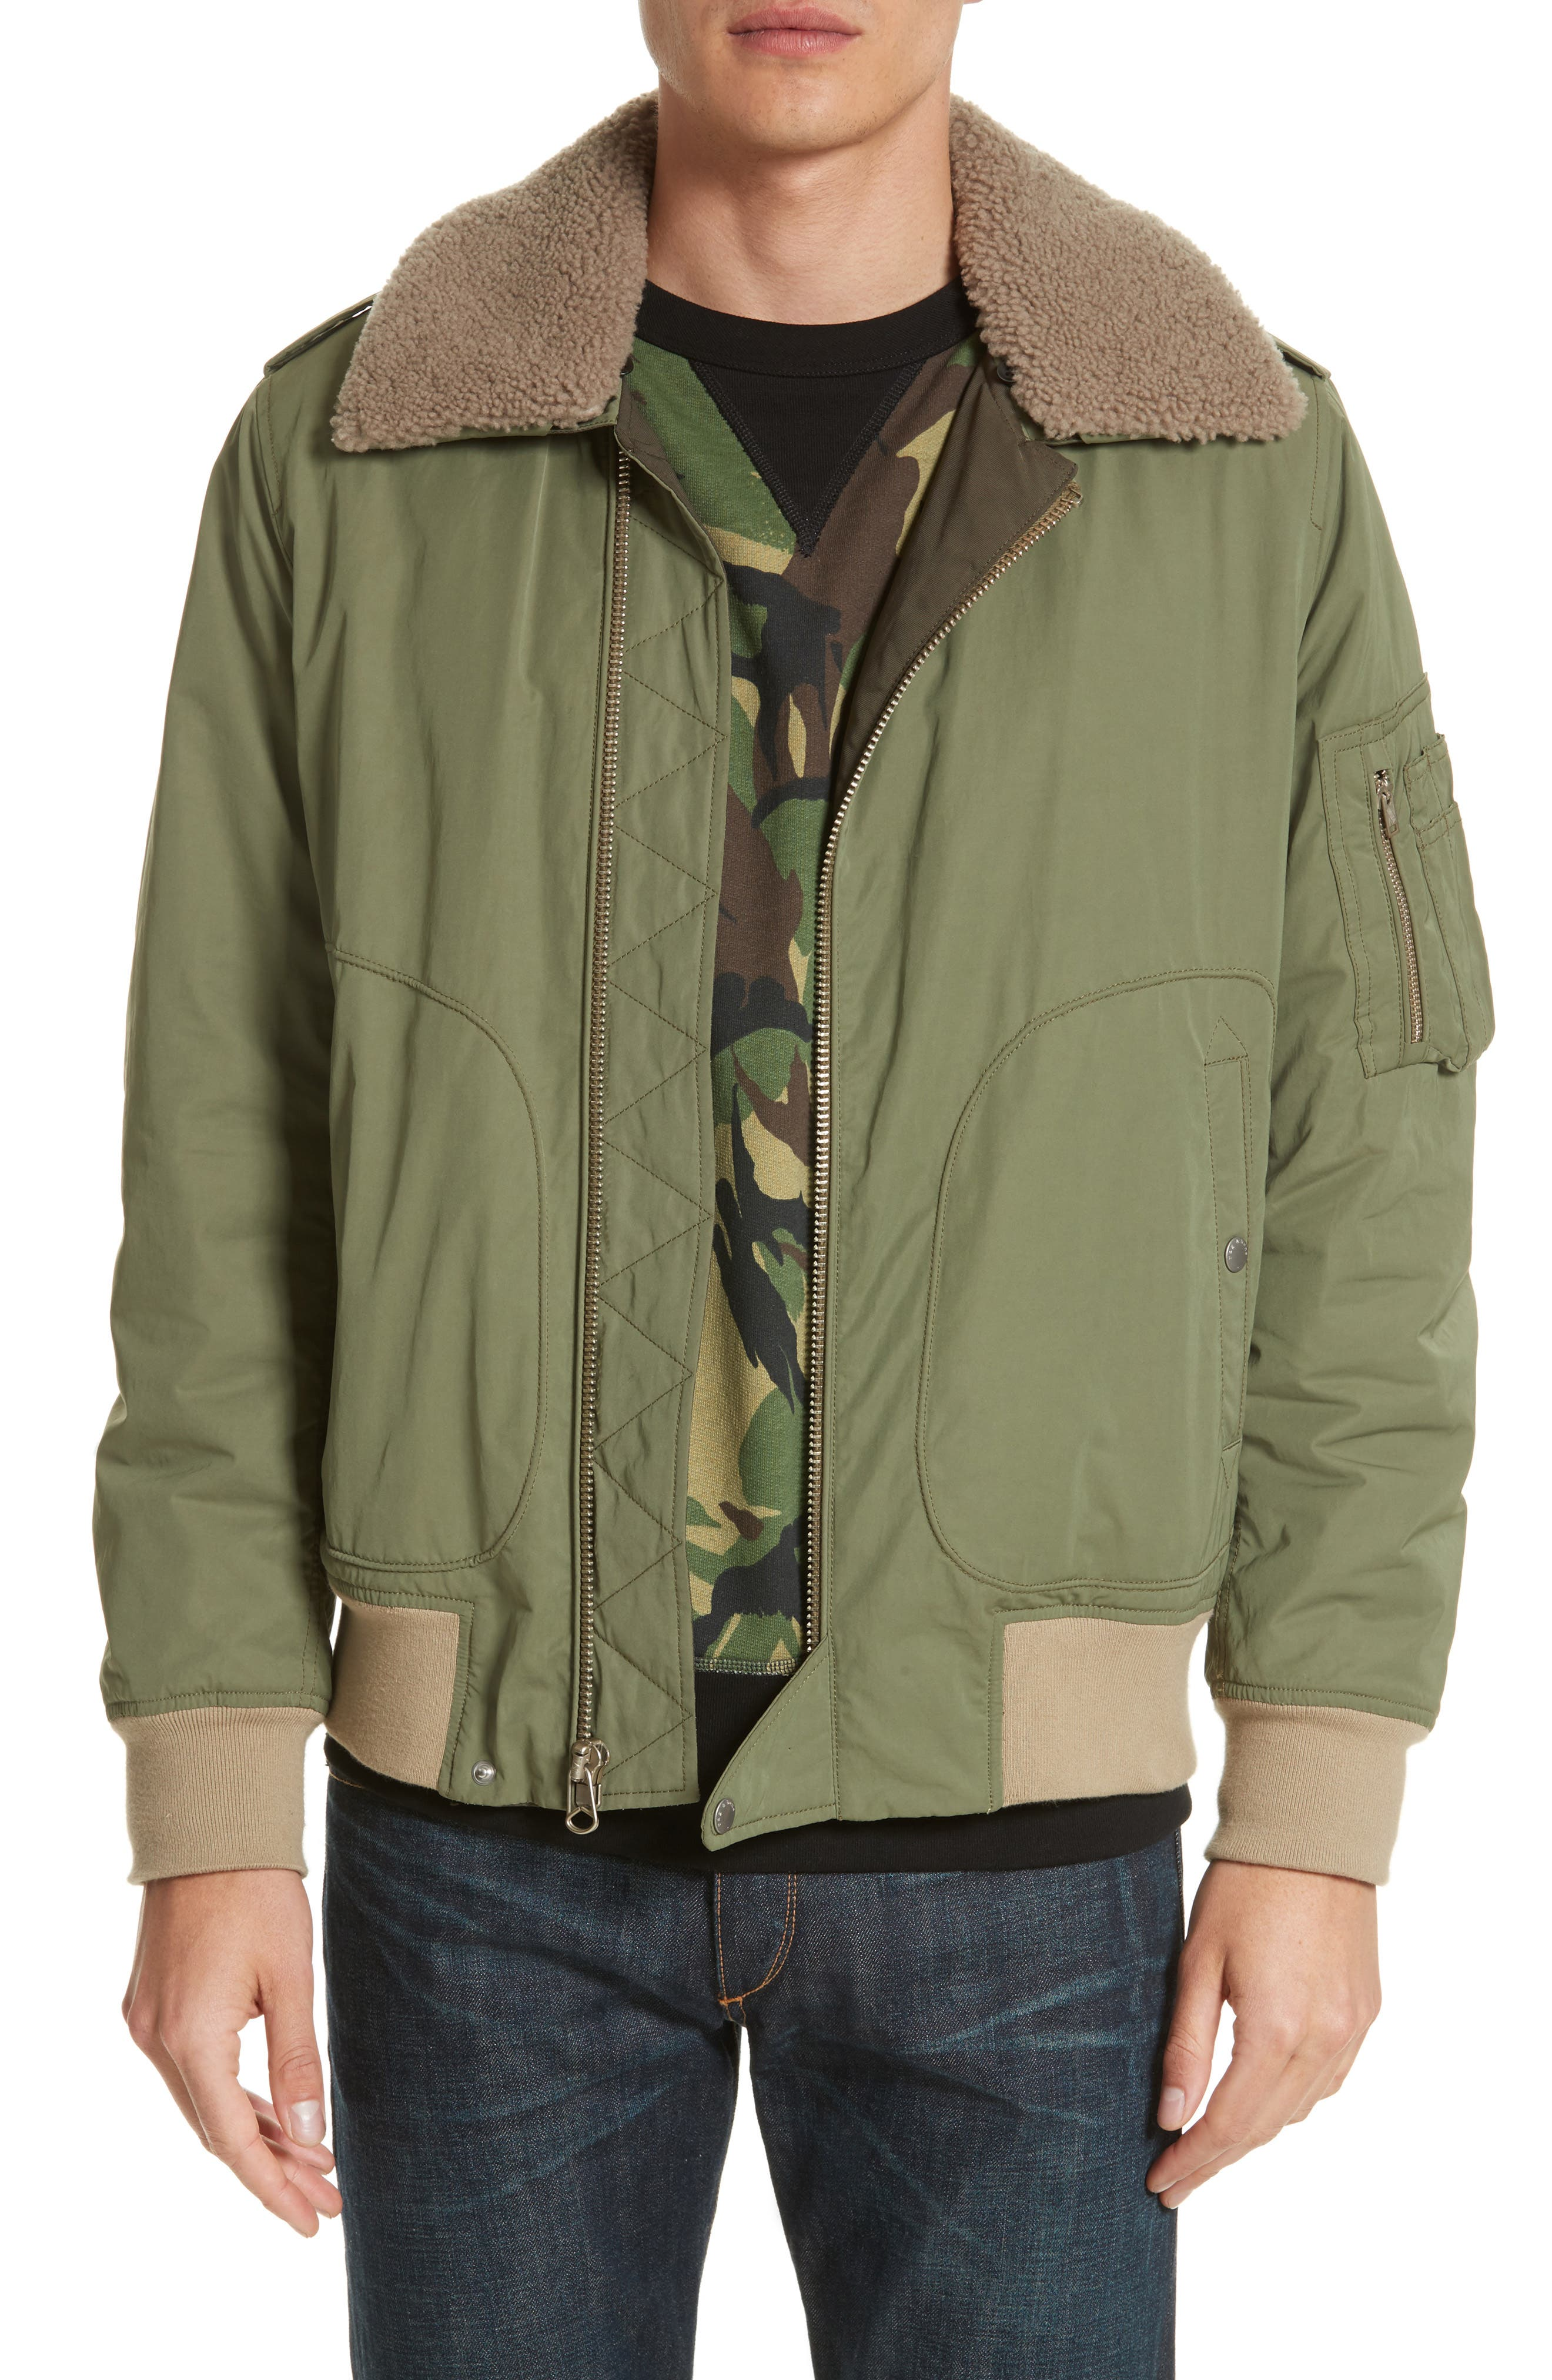 Alternate Image 1 Selected - rag & bone Flight Jacket with Genuine Shearling Collar